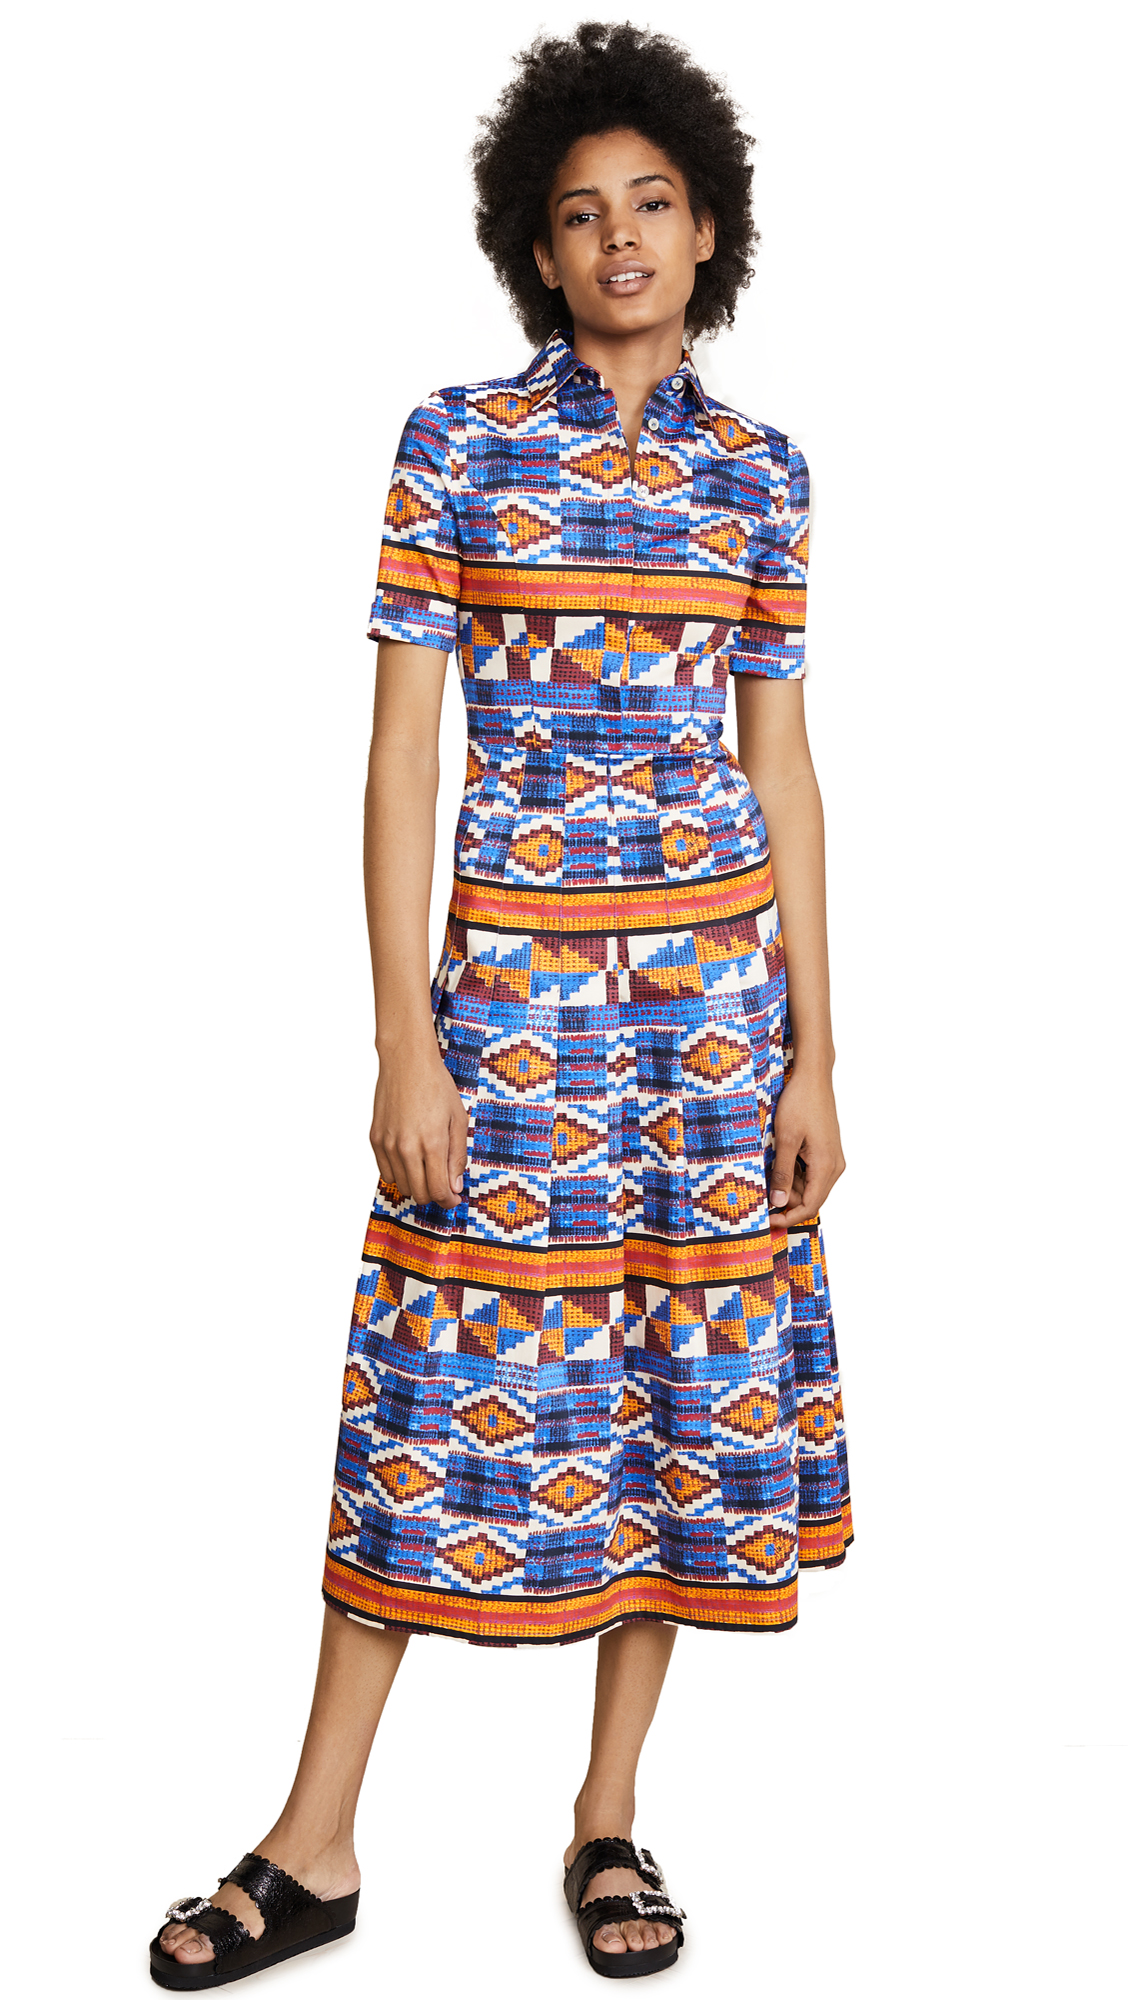 Stella Jean Button Down Print Dress - Kente/Multi